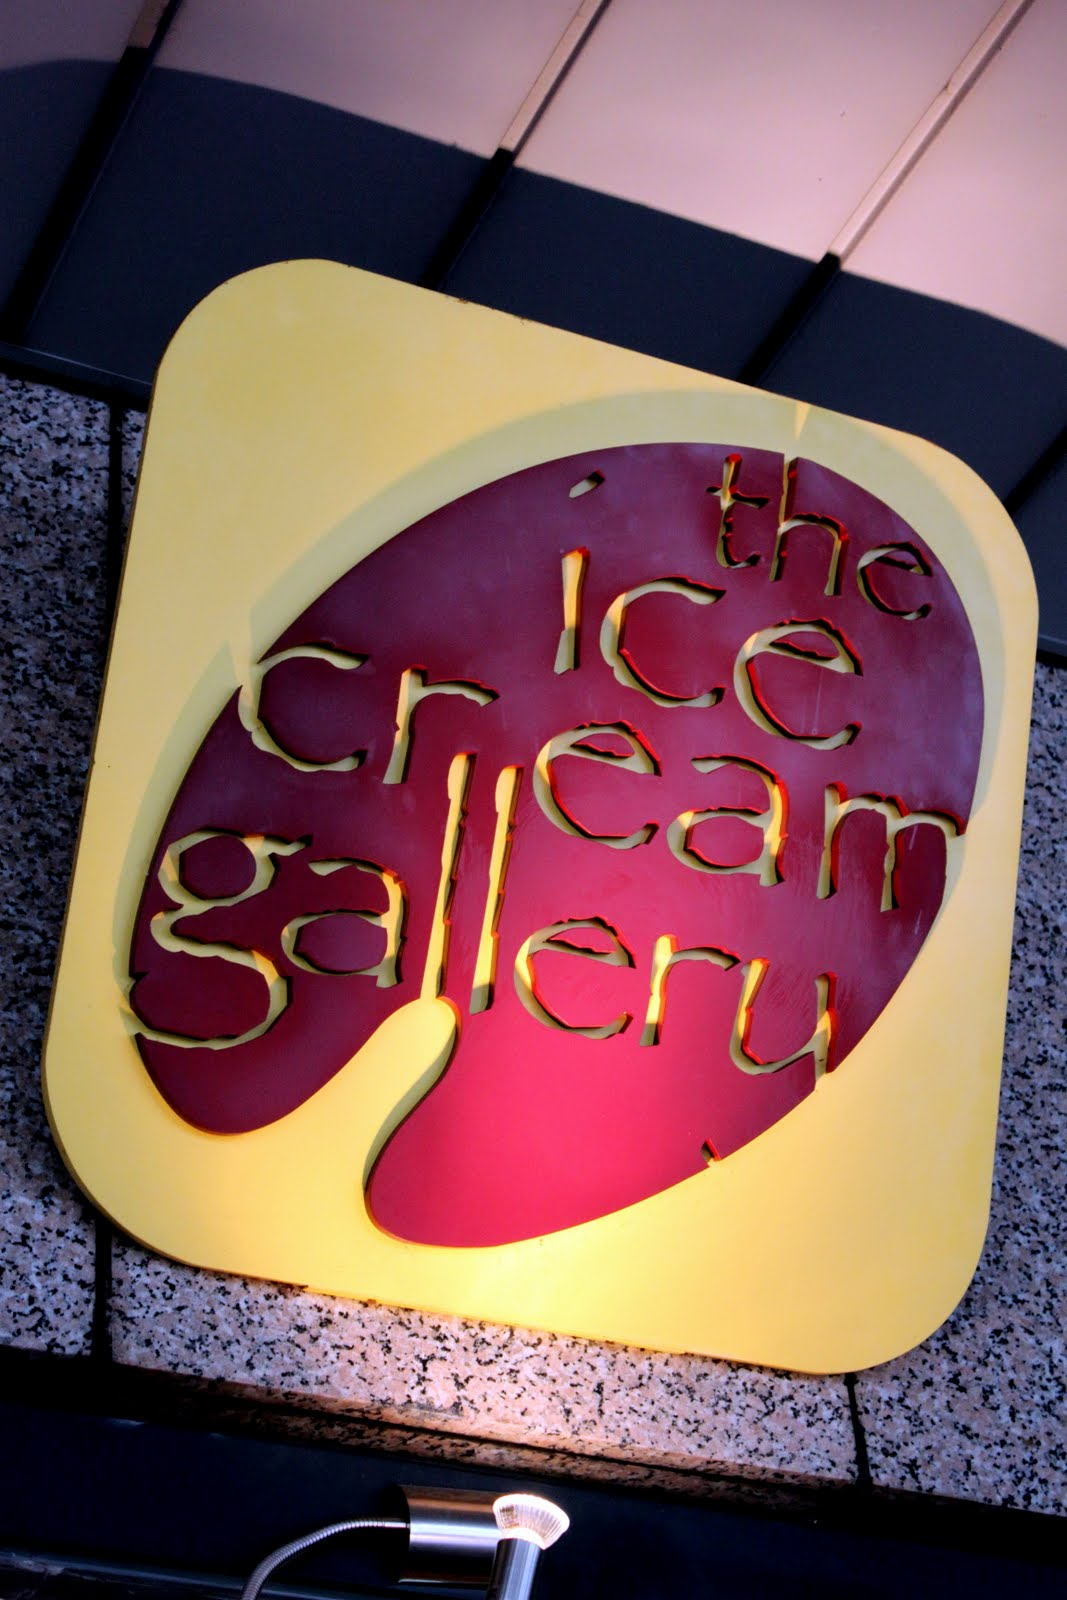 *the simplest aphrodisiac: The Ice Cream Gallery